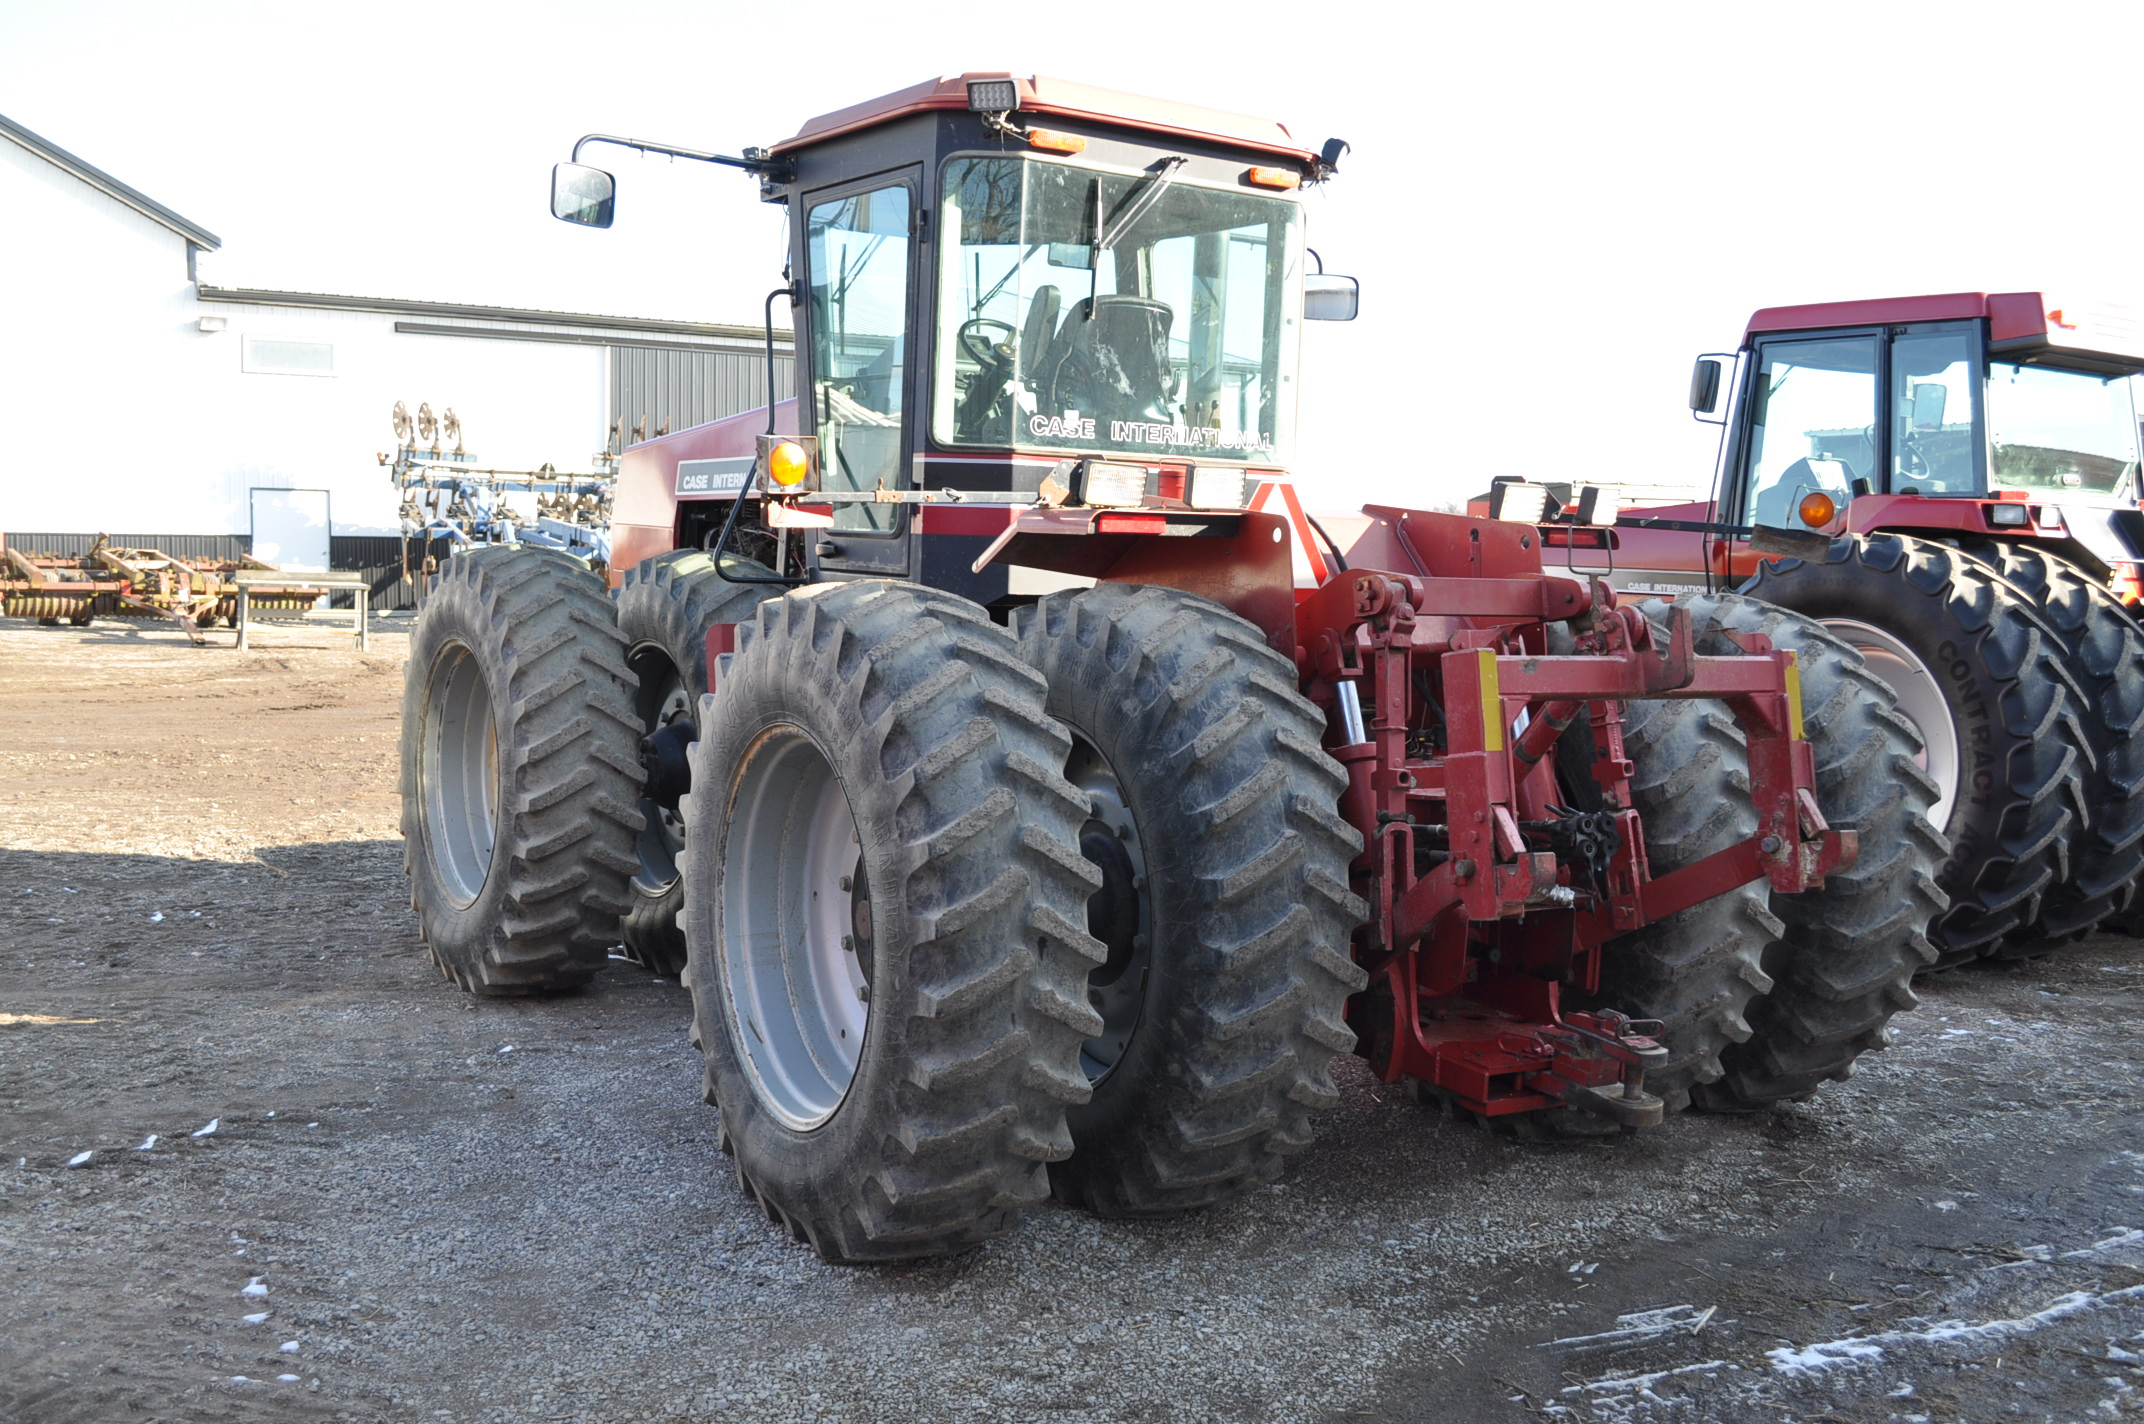 Case IH 9230 4WD tractor, 18.4-38 duals, power shift, skip shift, 4 hyd remotes, 3pt, quick hitch, - Image 3 of 23